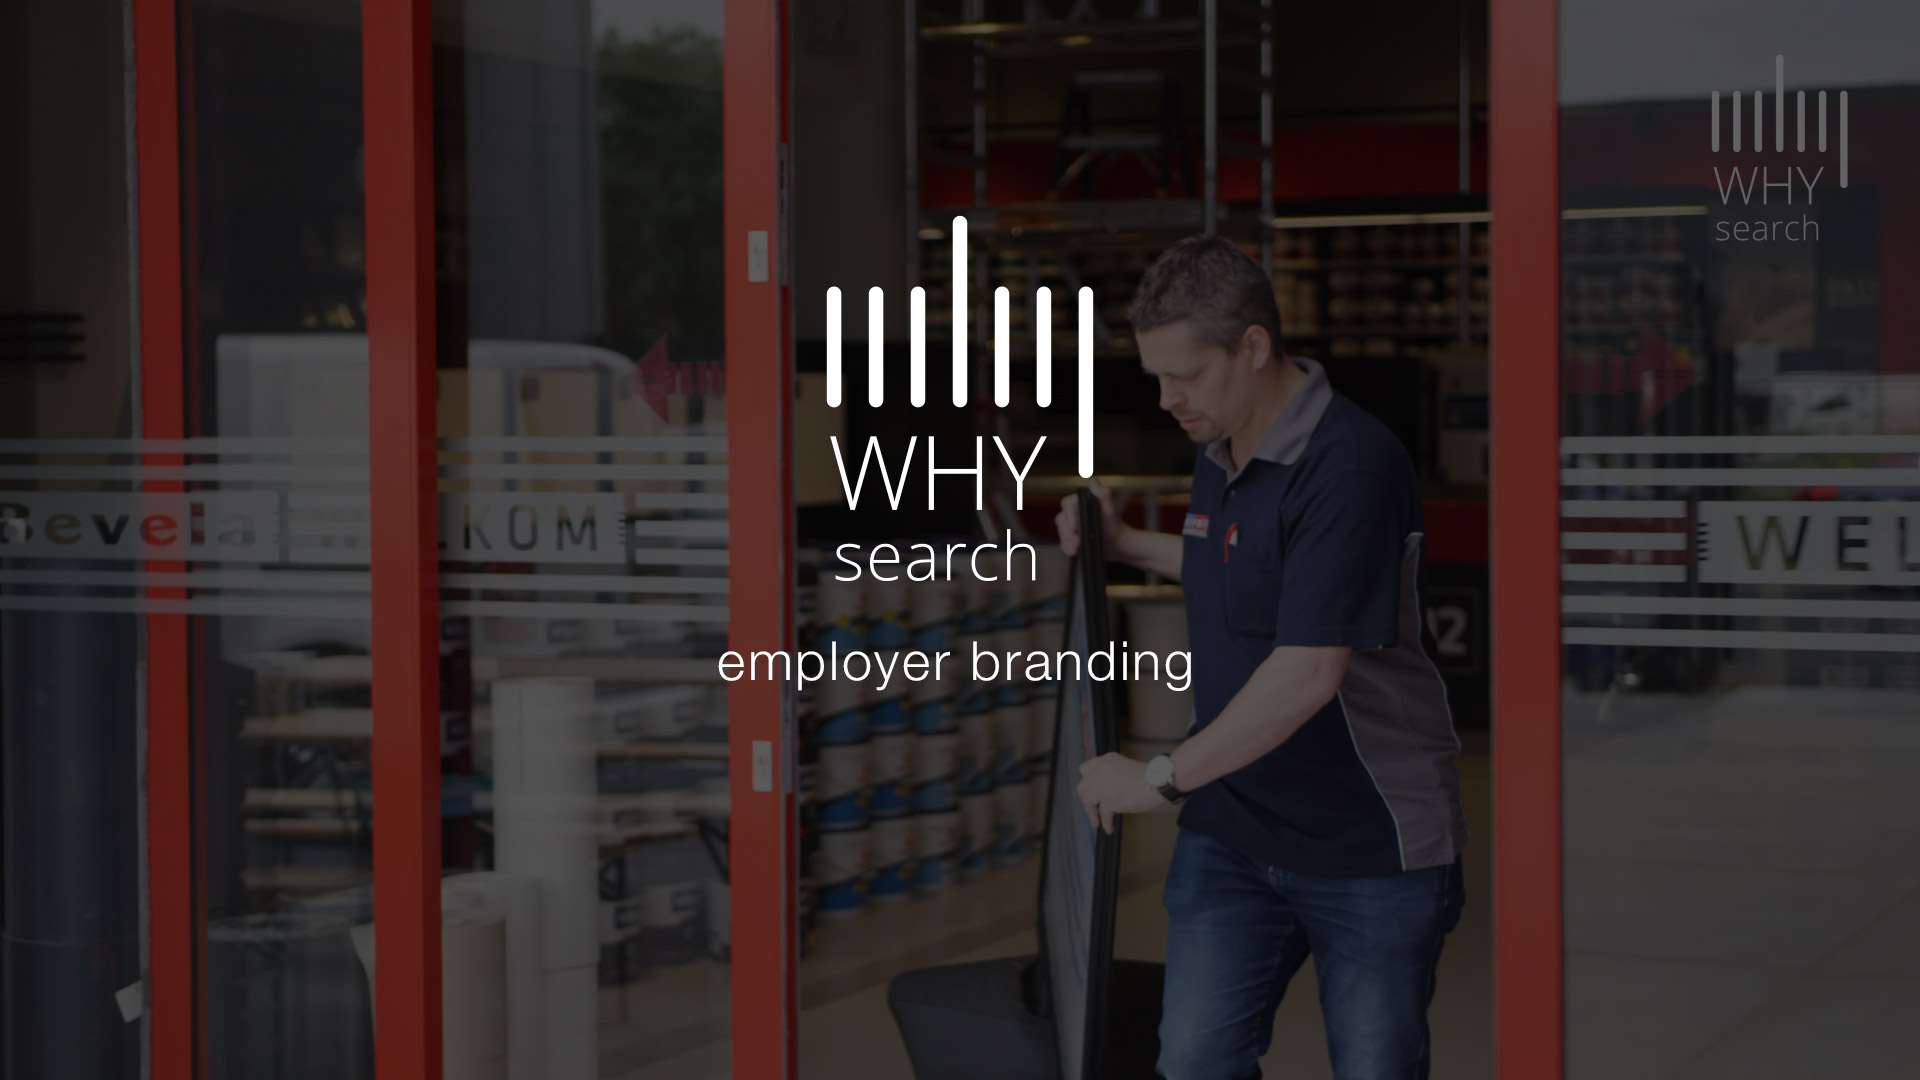 WHY search employer branding video